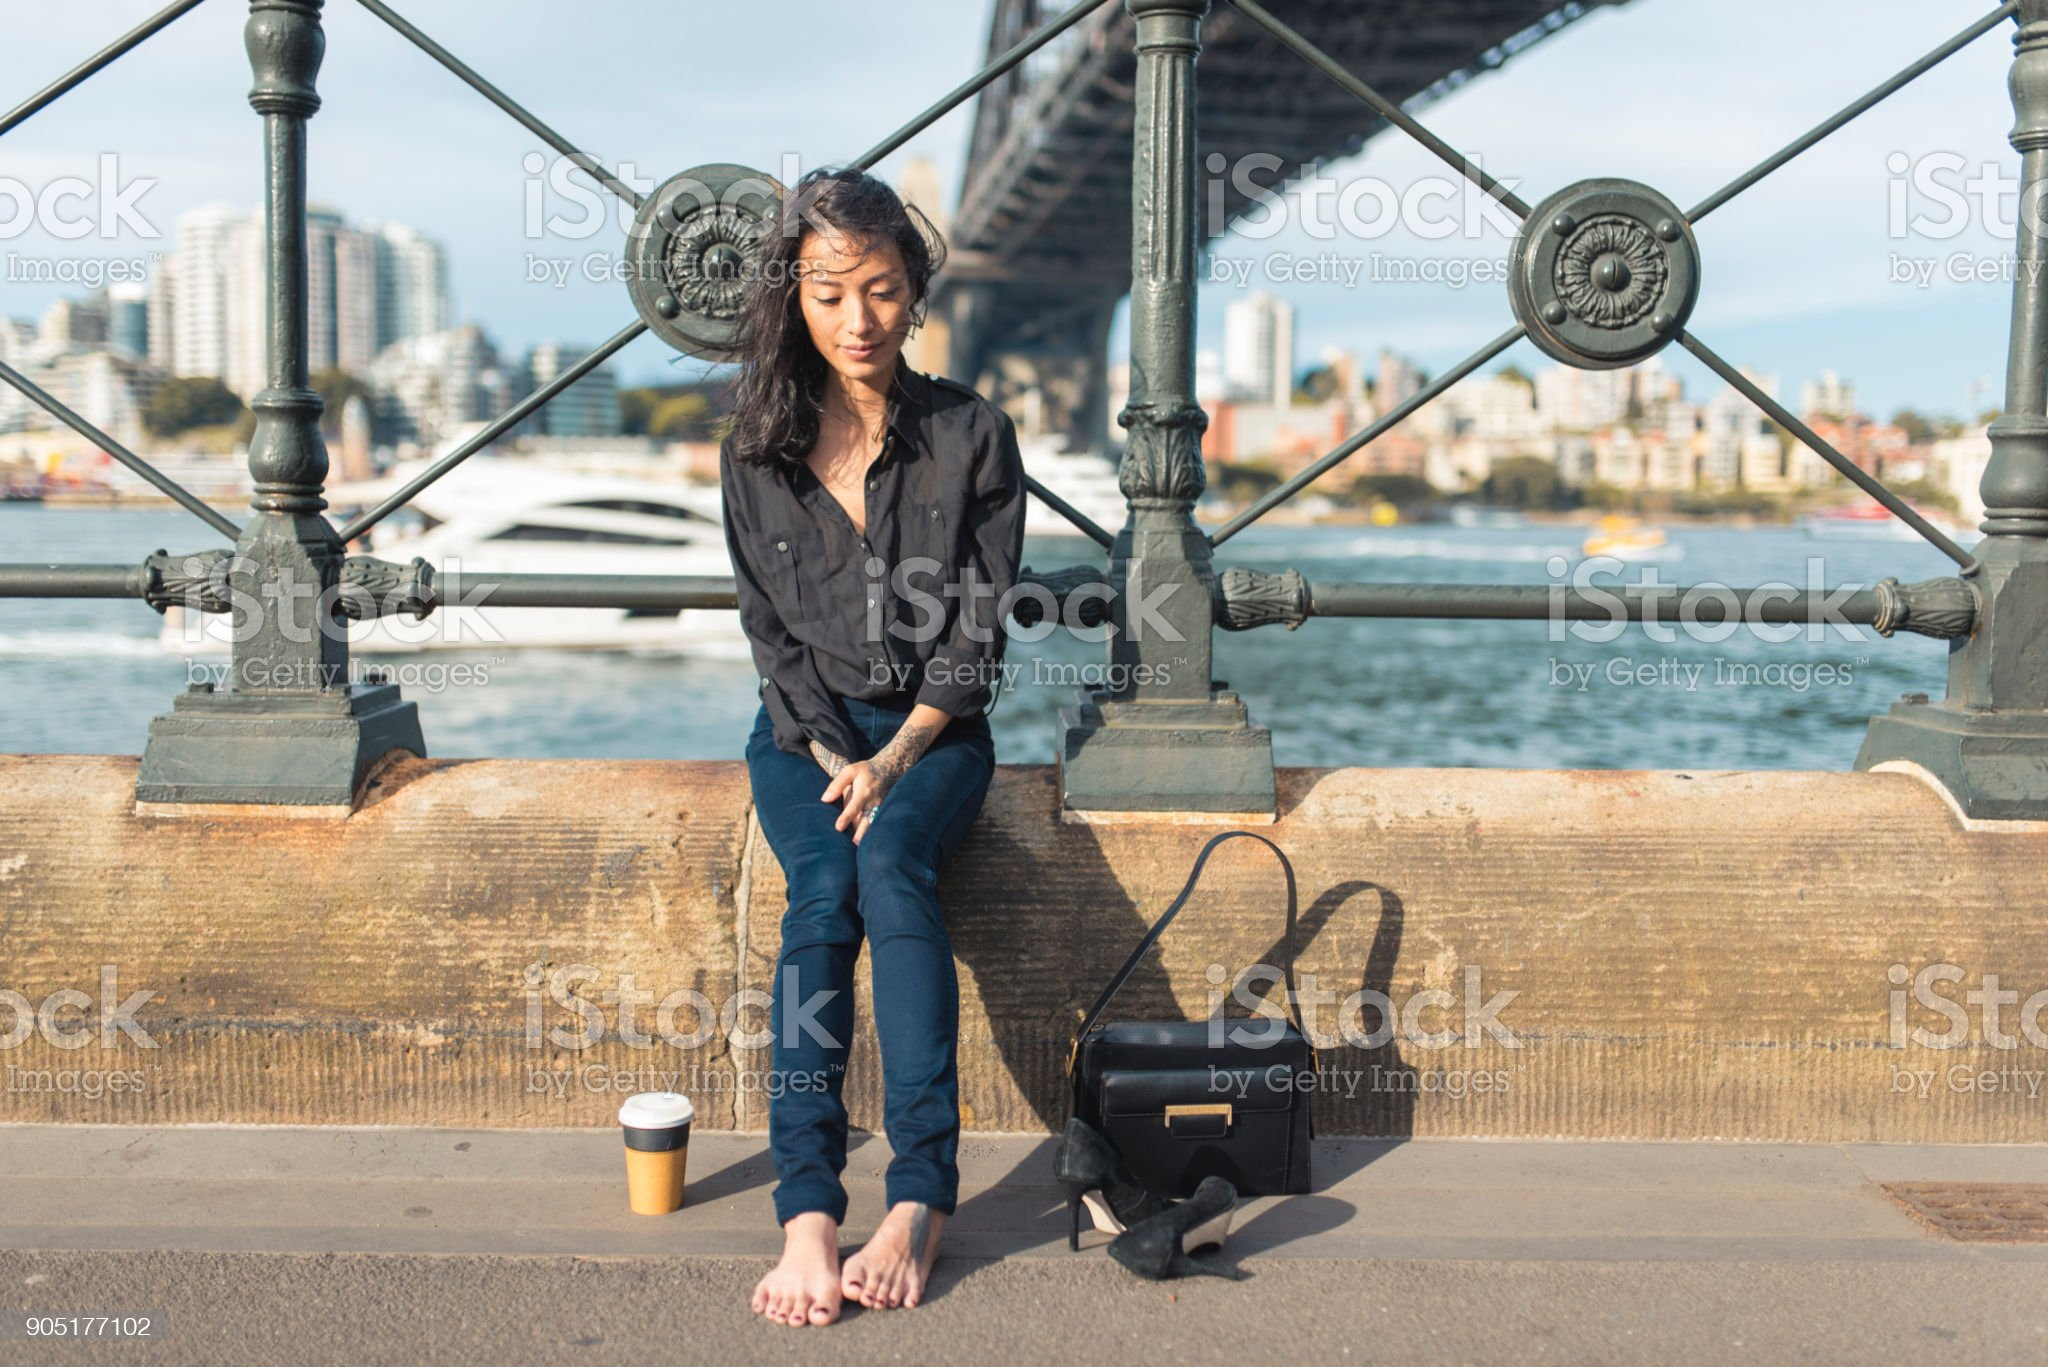 https://media.istockphoto.com/photos/asian-woman-taking-a-break-and-being-barefoot-picture-id905177102?s=2048x2048